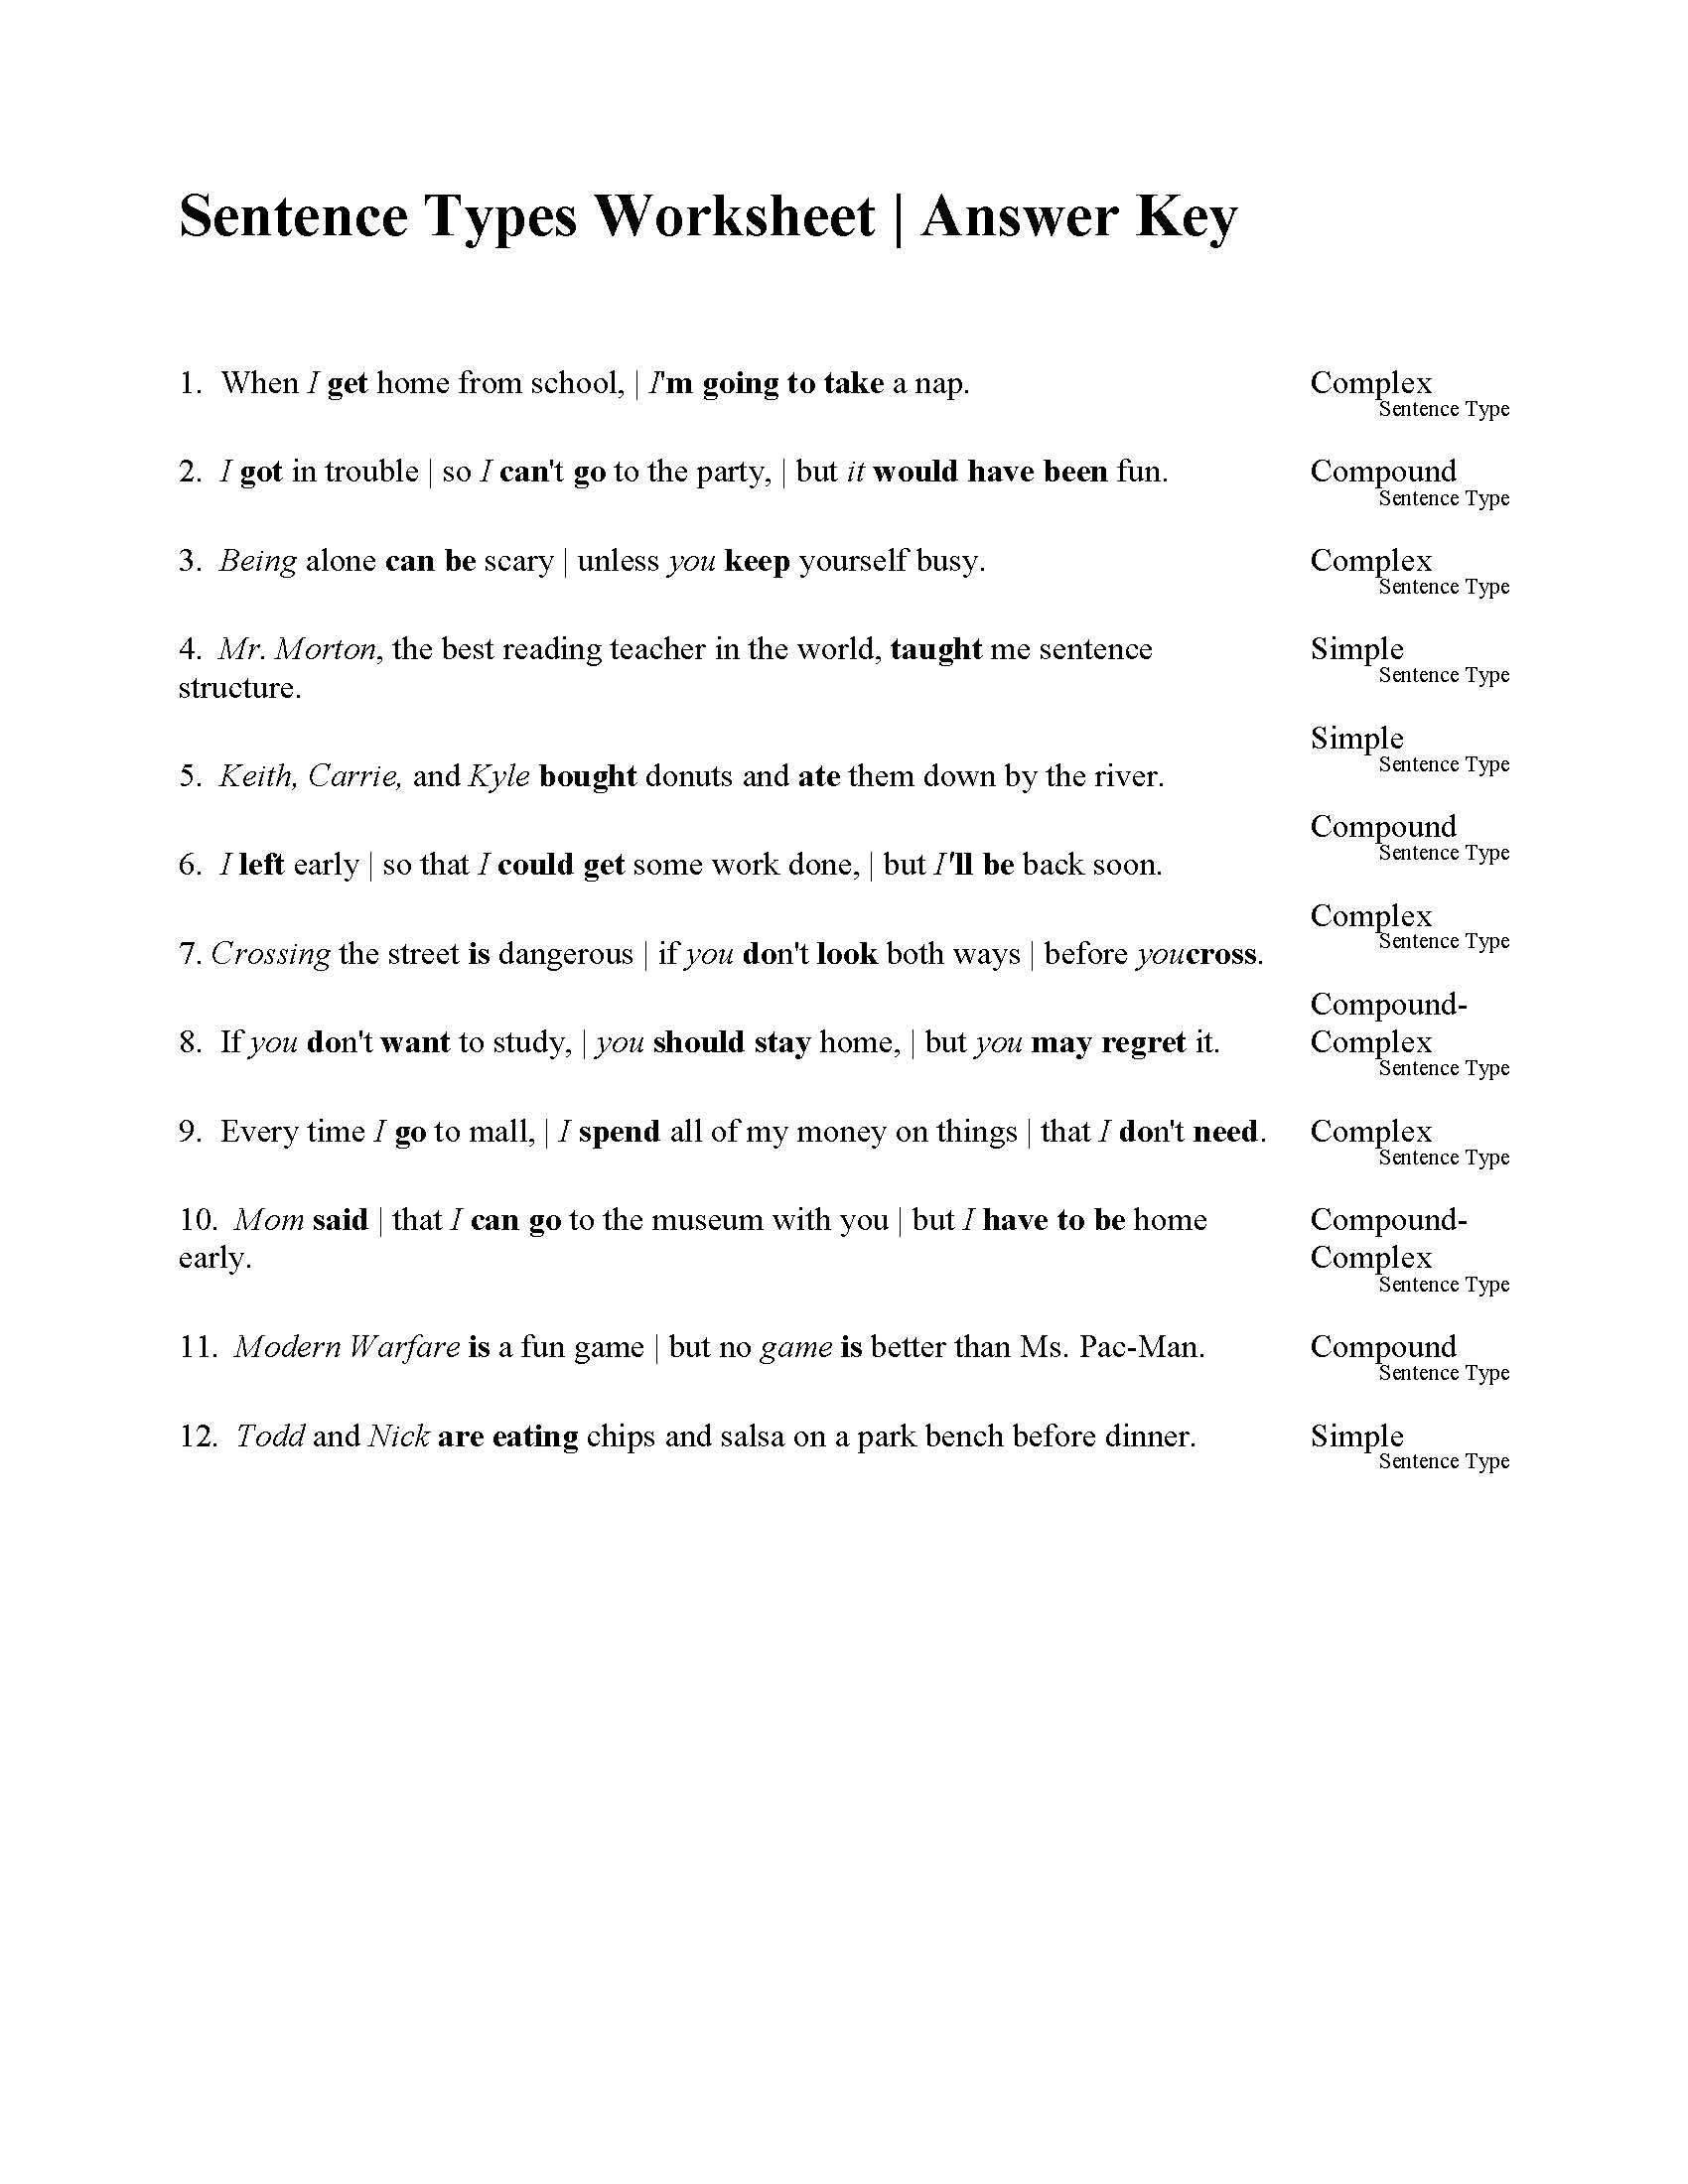 Sentences Types Worksheet Answers Sentence Types Clip Art This Is The Answer Key For The Sentences Types Worksheet